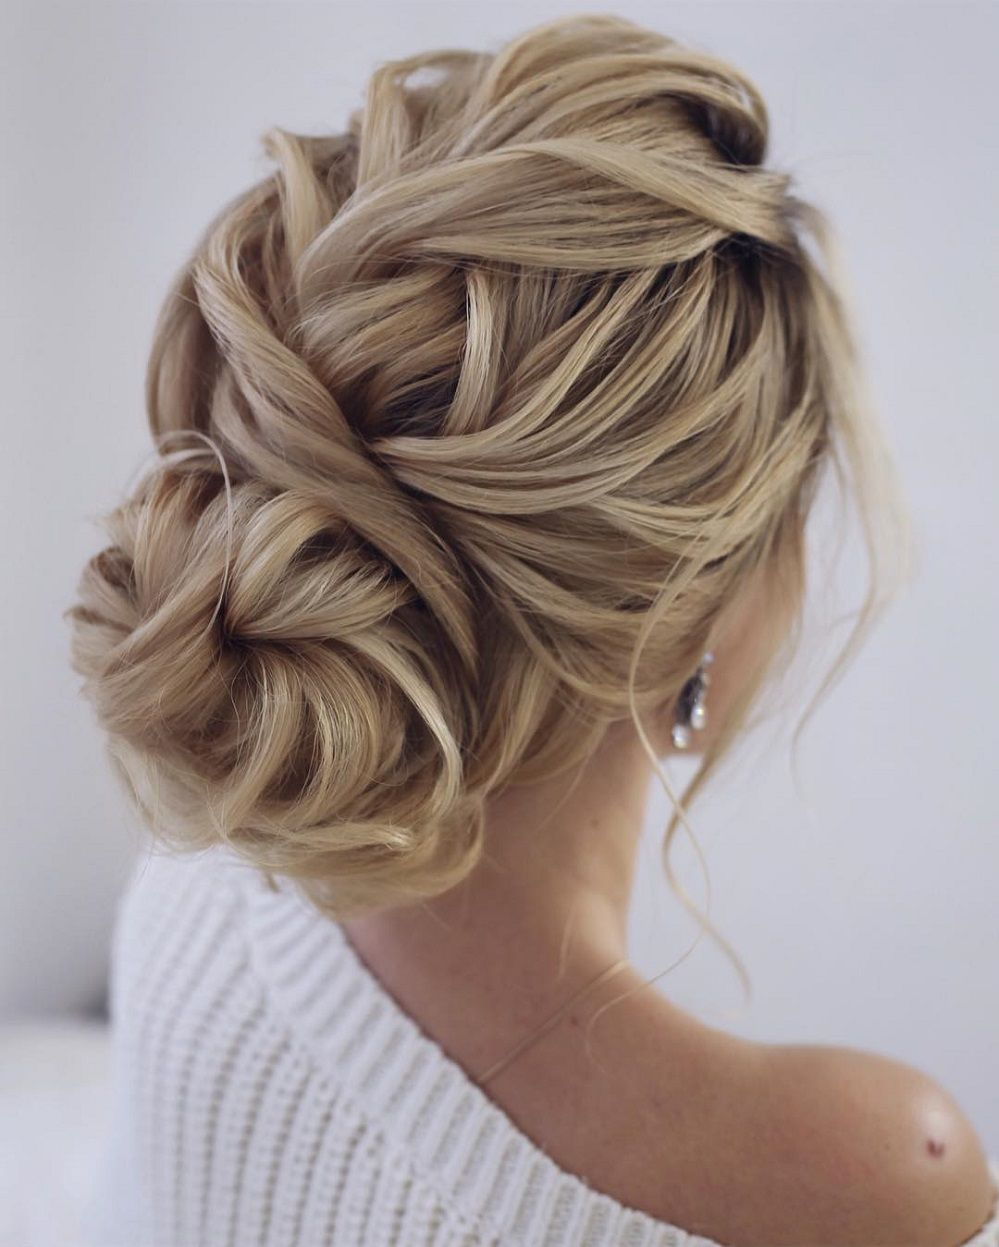 Gorgeous super-chic hairstyles That\u2019s Breathtaking Here are surprisingly simple yet super-chic hairstyles for the girl/bride to be who just can\u2019t be bothered. From The Twisted Bun,The Swept uUdo, The... #bunupdo